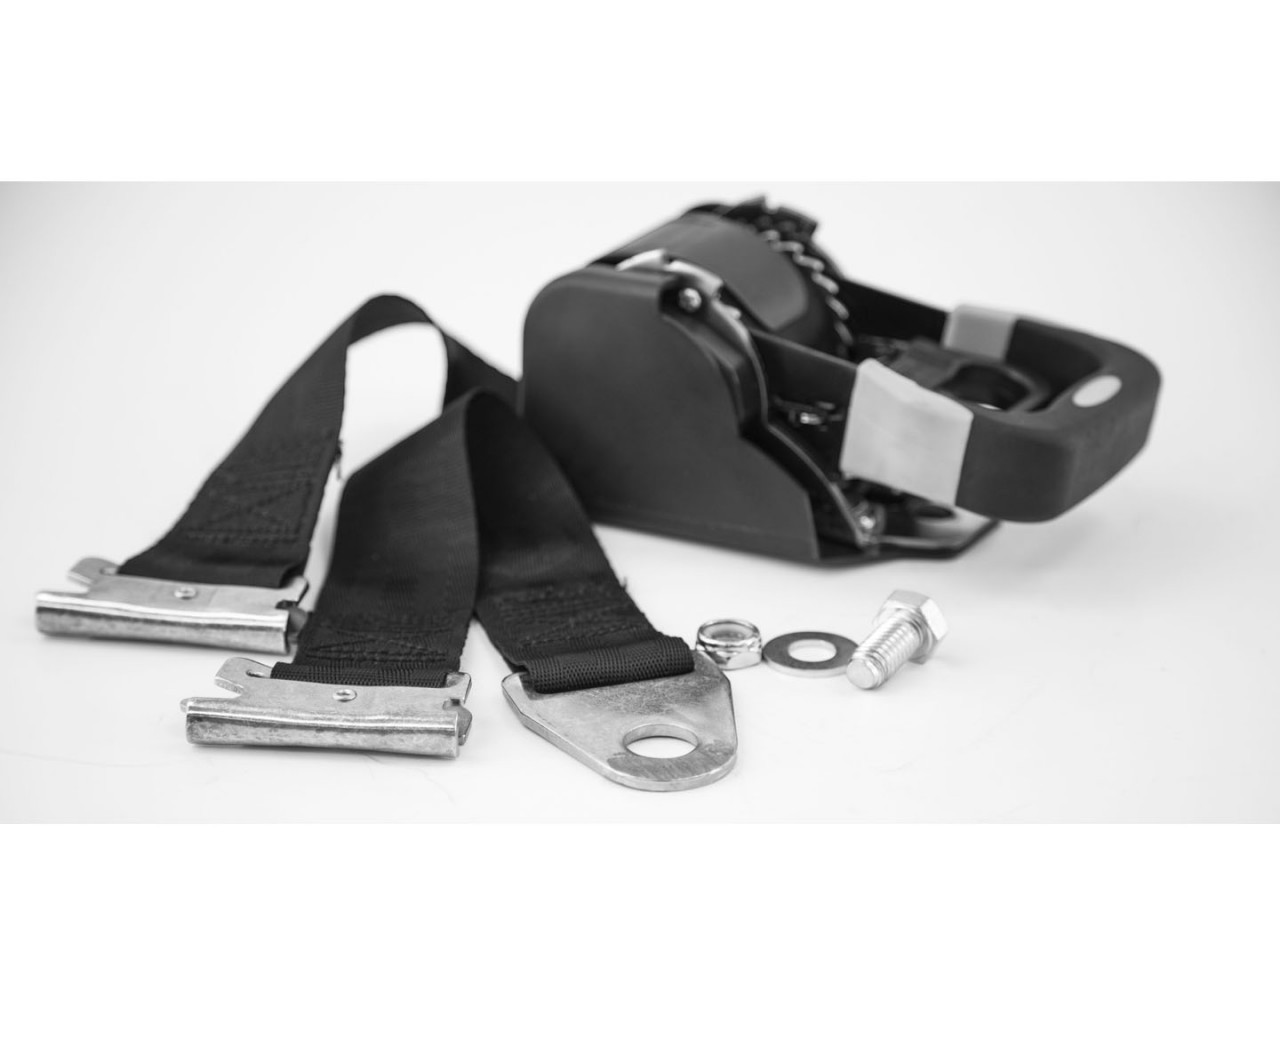 5480011 --- Retractable E-Track Ratchet Tie Down